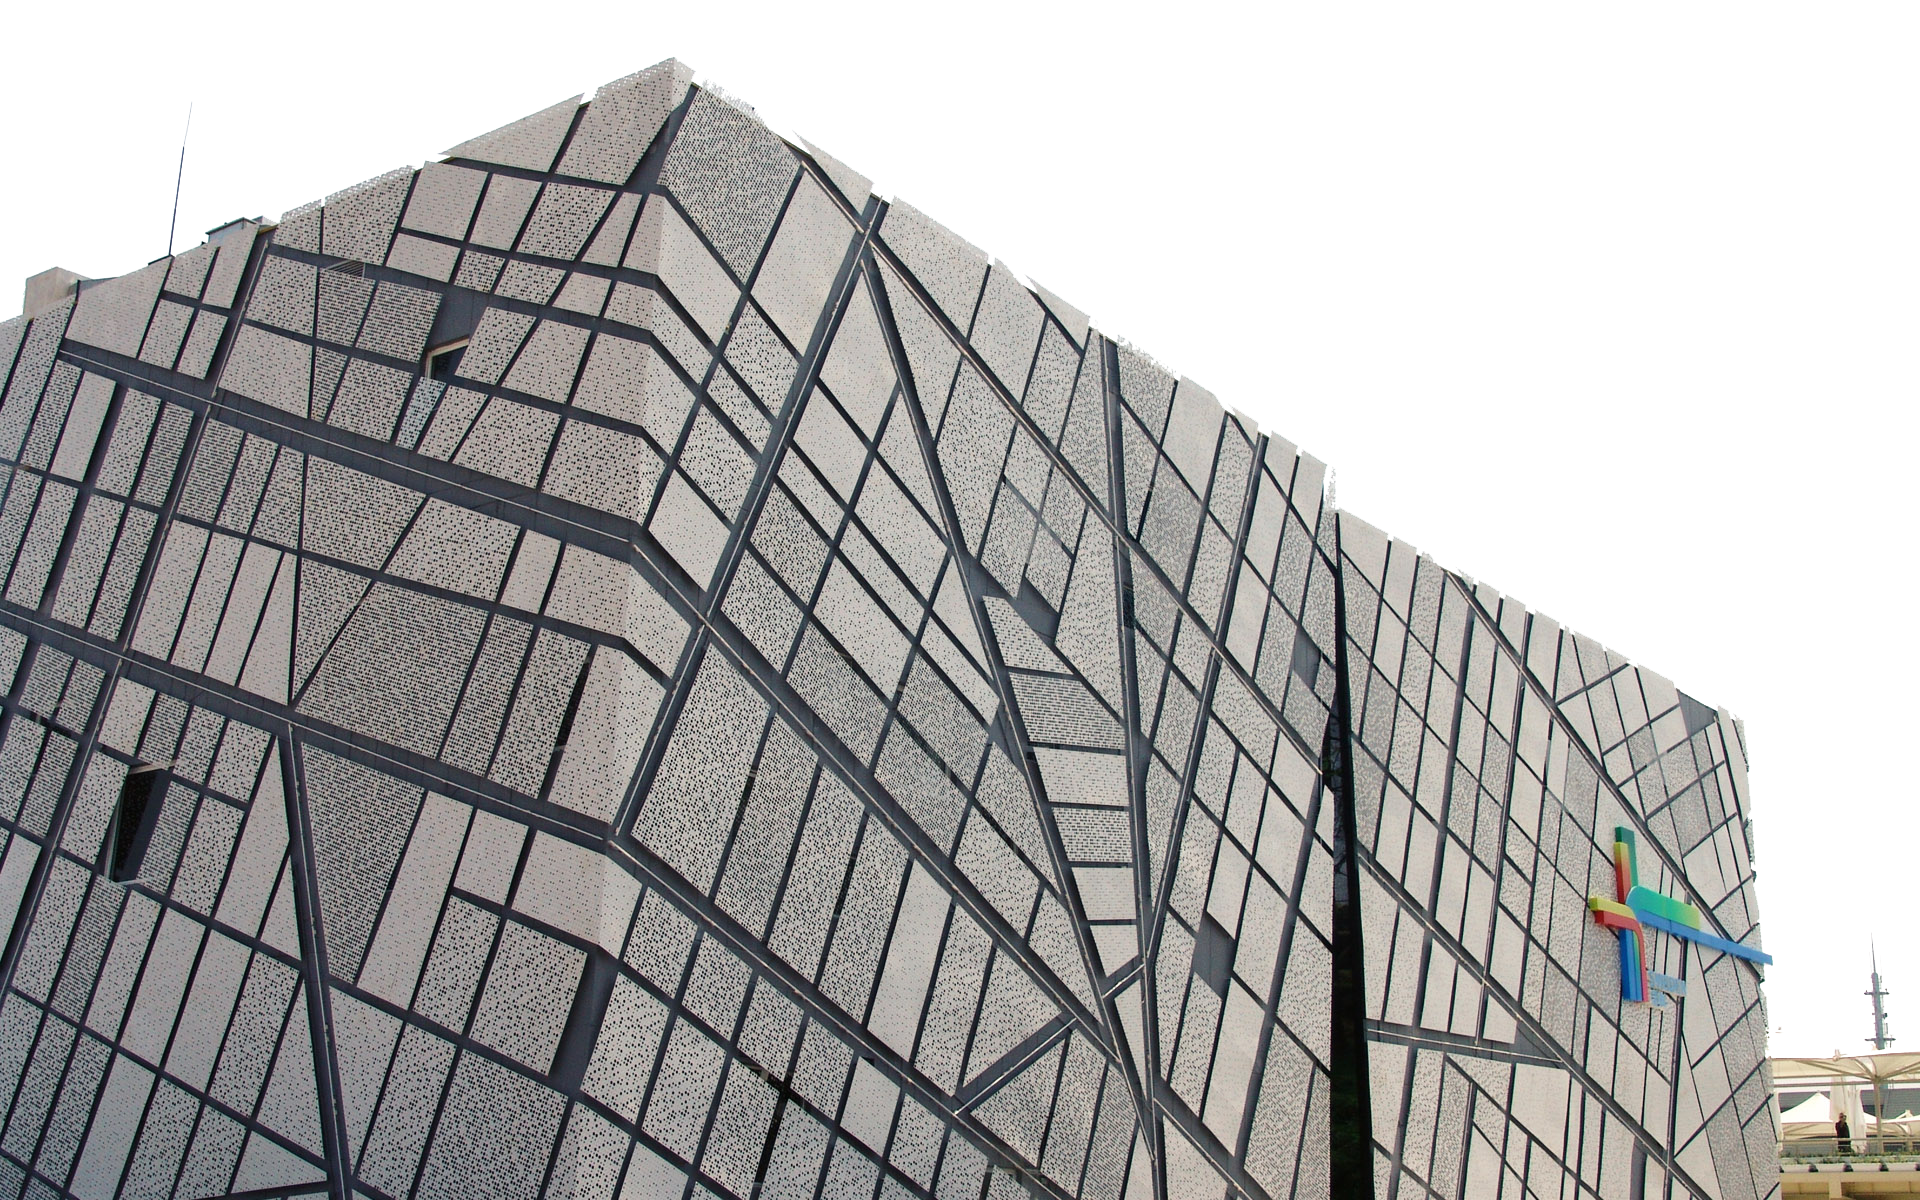 Building with Geometric Shaped Wall Design PNG Image